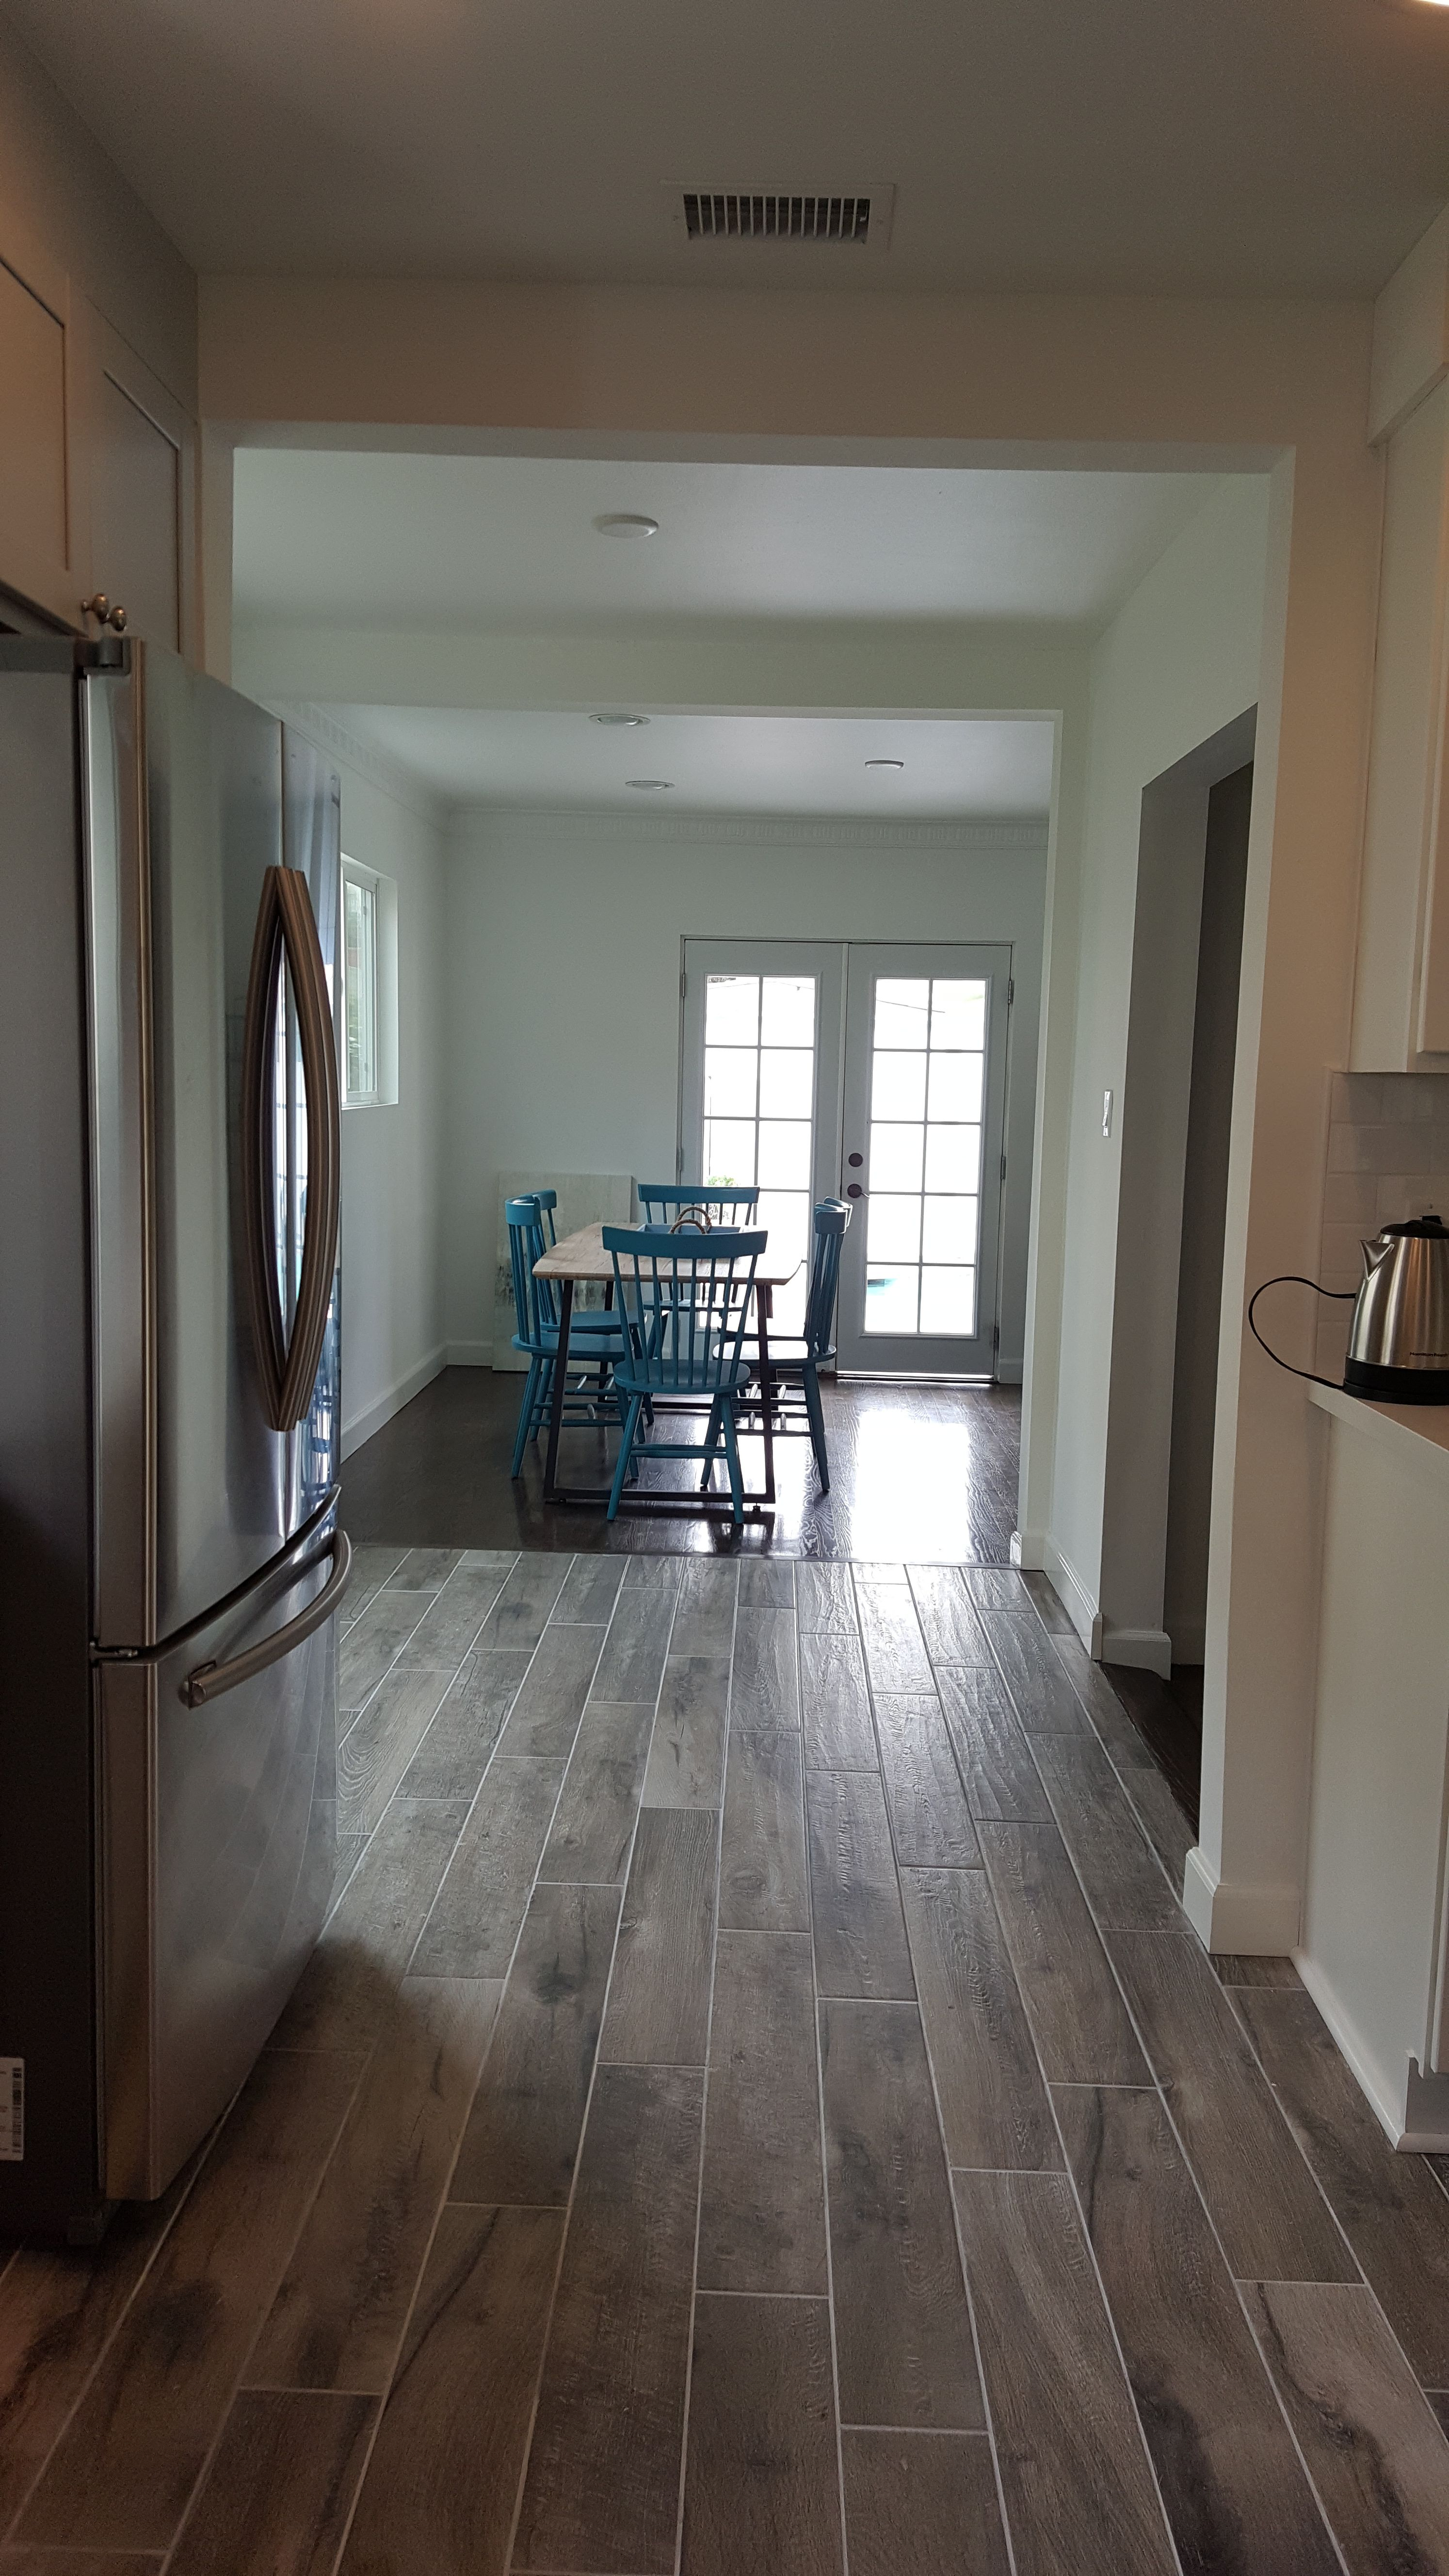 Porcelain tile planks that resemble wood flooring. Free in home consult and quote with LA remodeling contractor Joe Grimberg. 818-633-5462